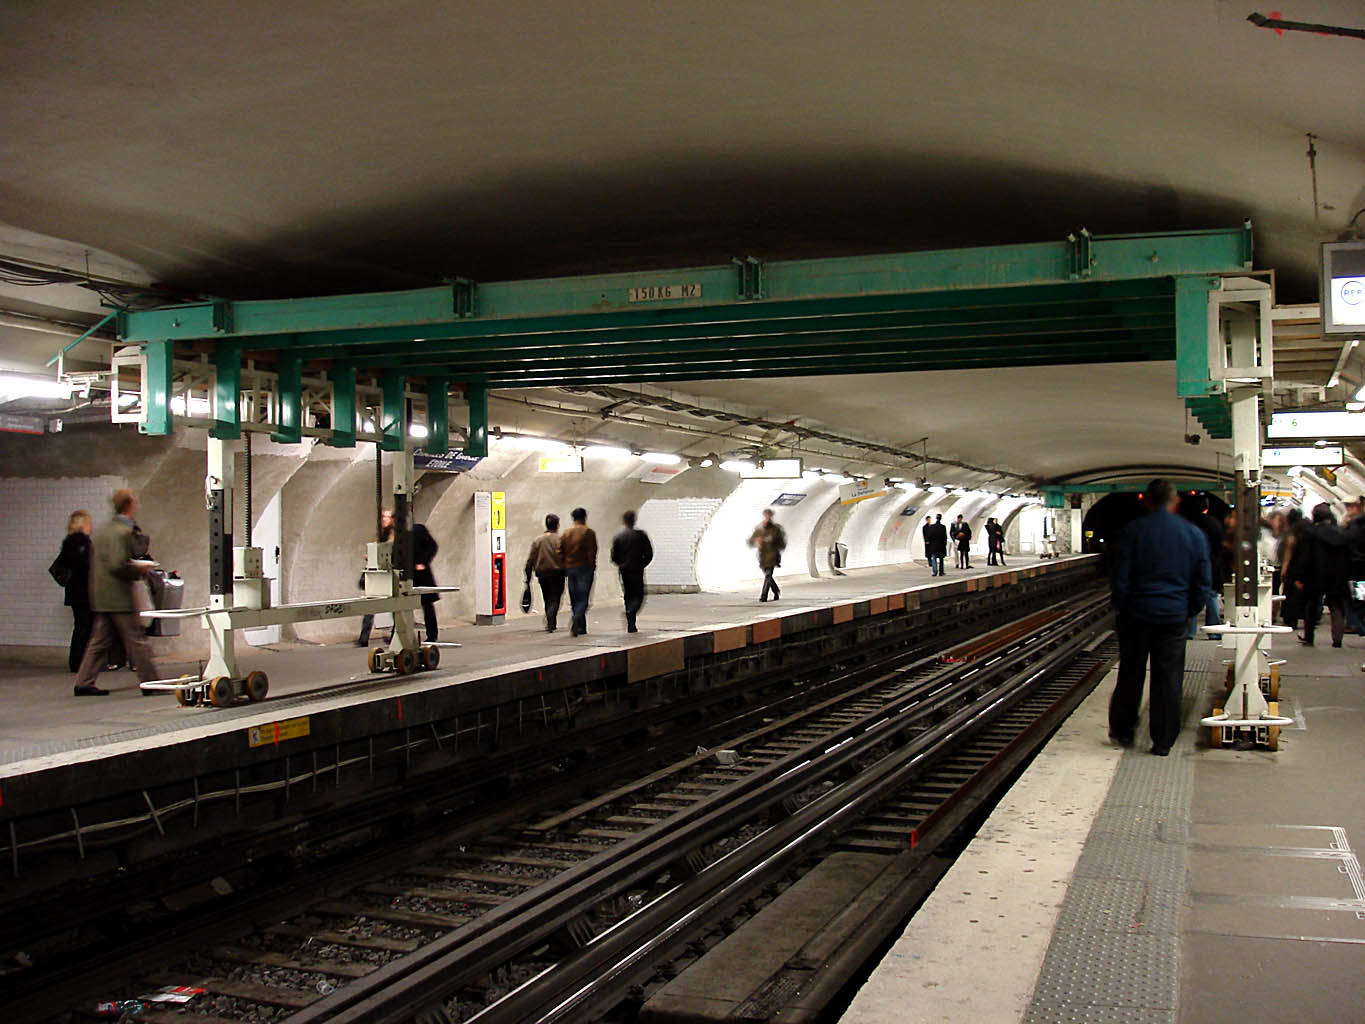 file metro de paris ligne 1 charles de gaulle etoile wikimedia commons. Black Bedroom Furniture Sets. Home Design Ideas